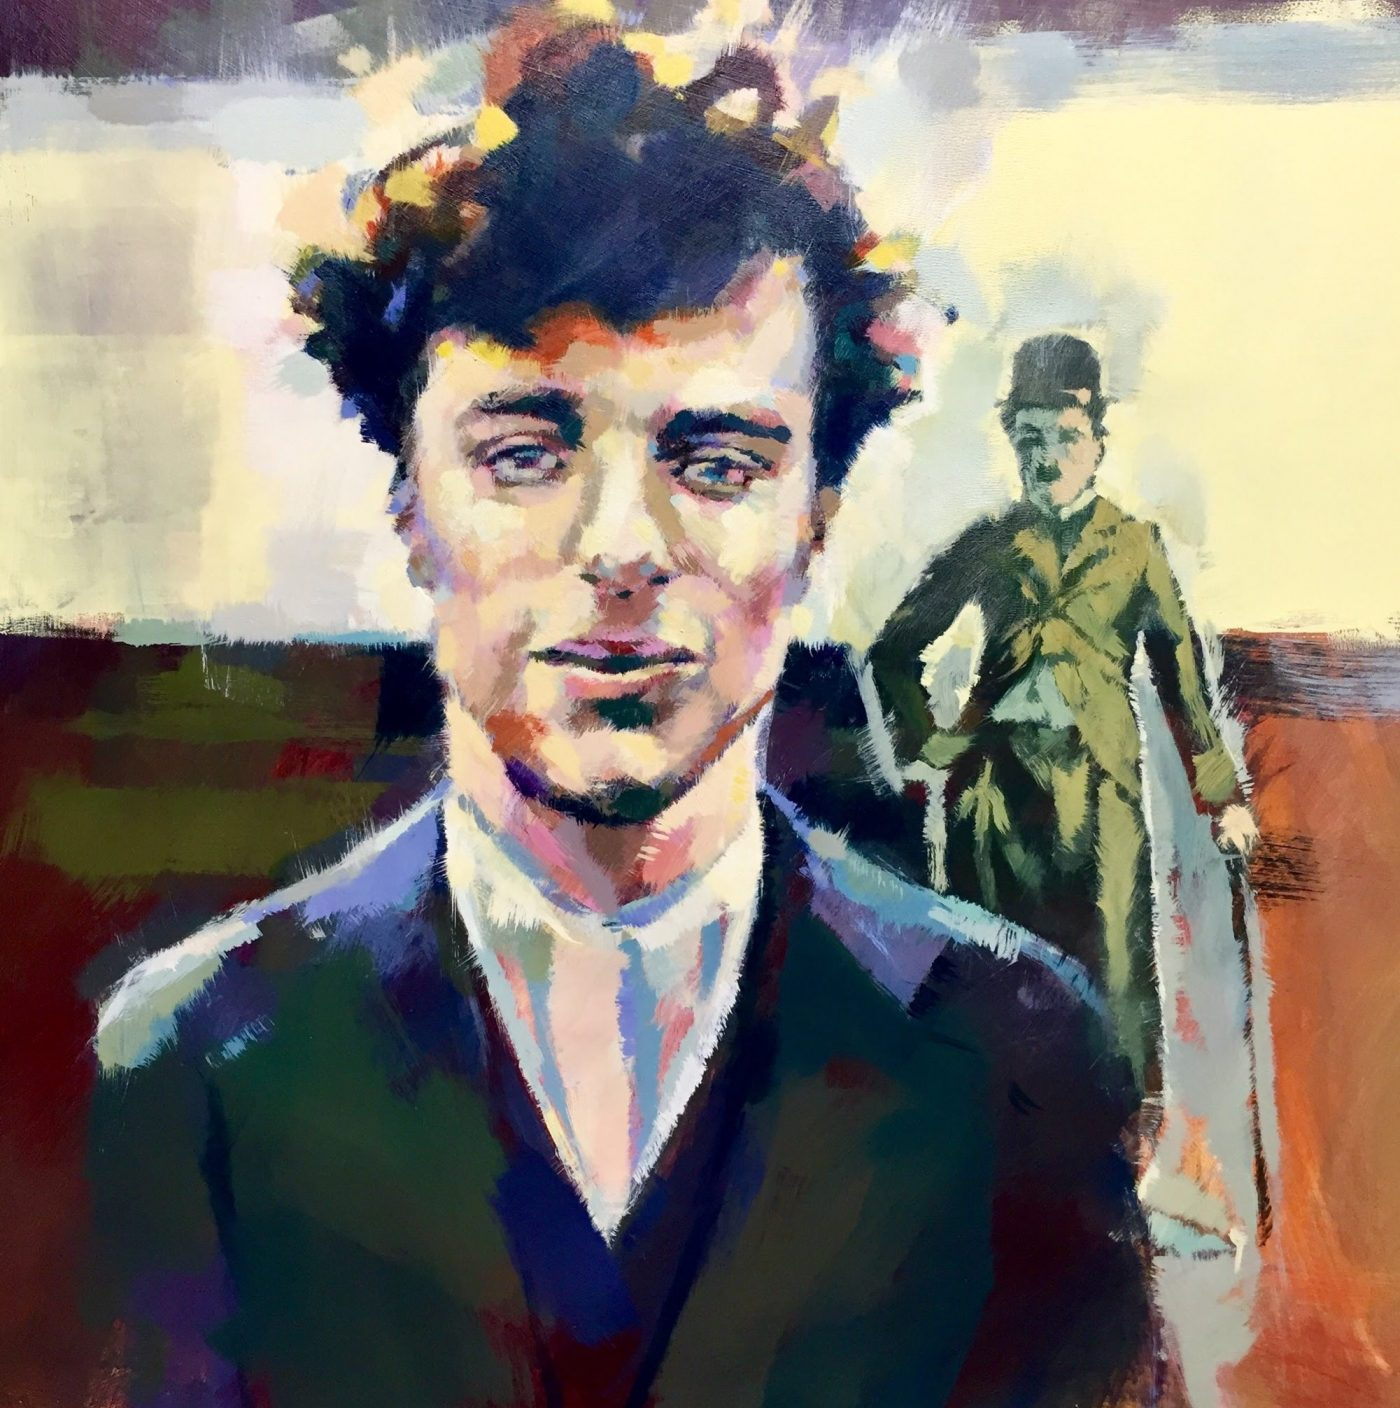 Young Charlie Chaplin by Henryk Ptasiewicz 24x24 acrylic on cradled panel